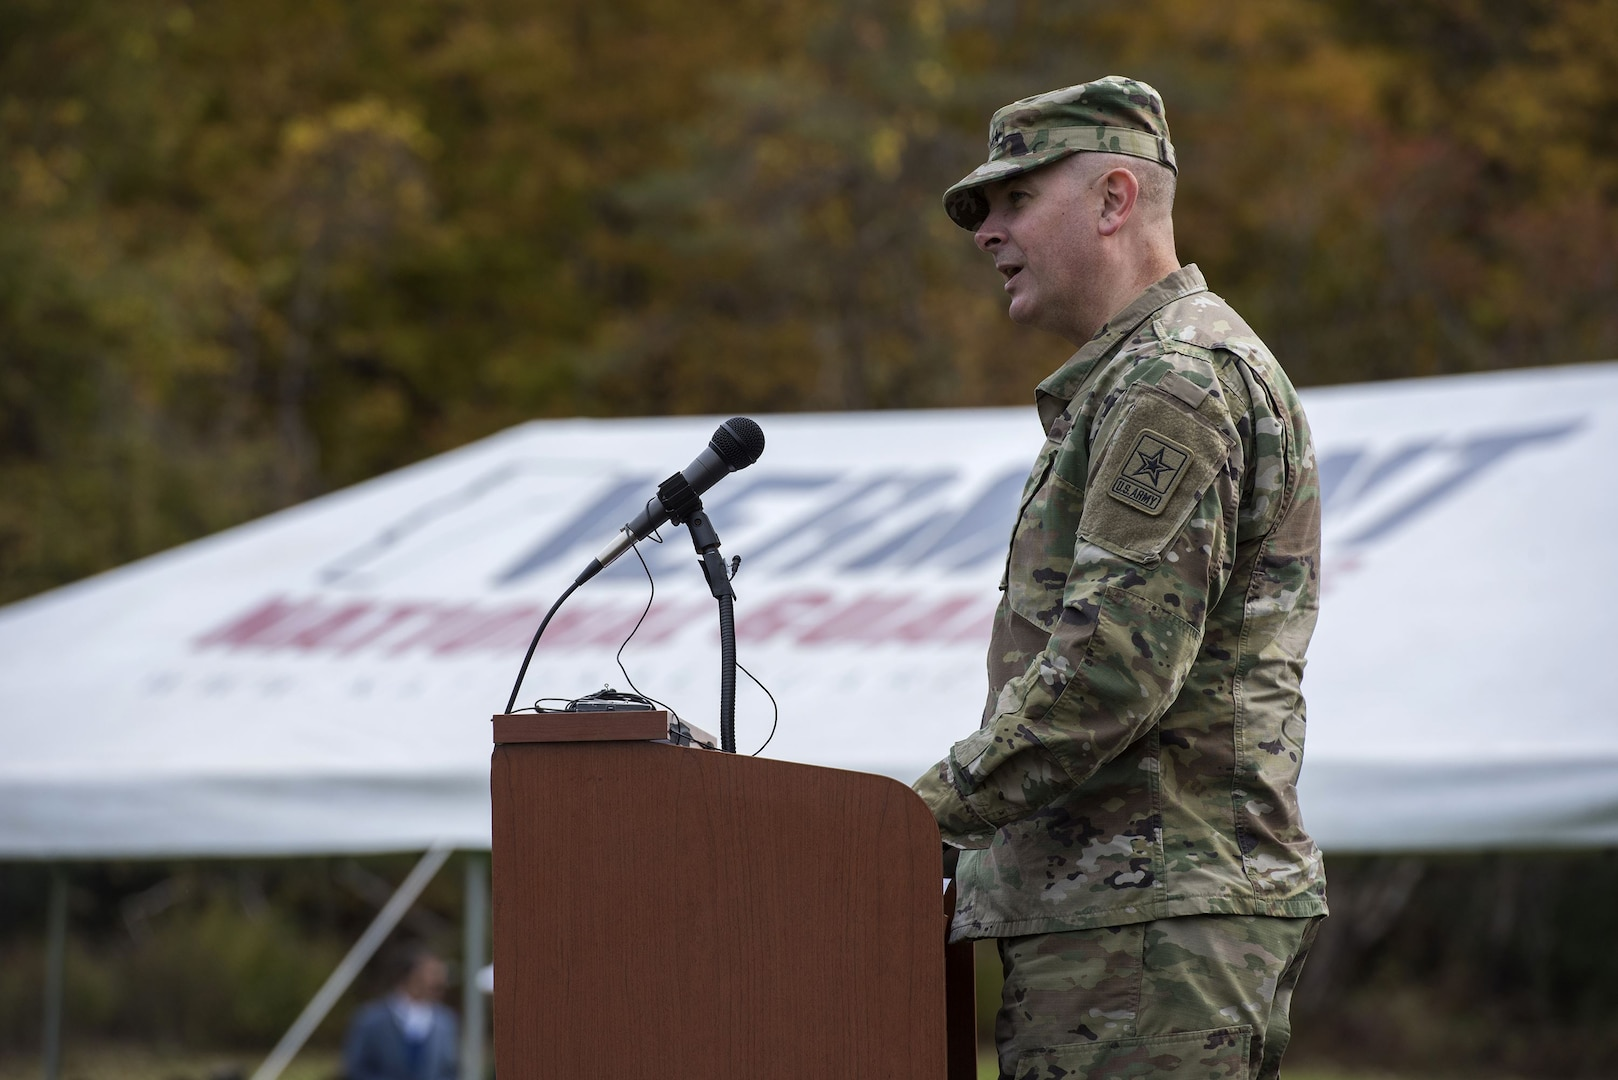 86th Infantry Brigade Combat Team Re-Patching Ceremony